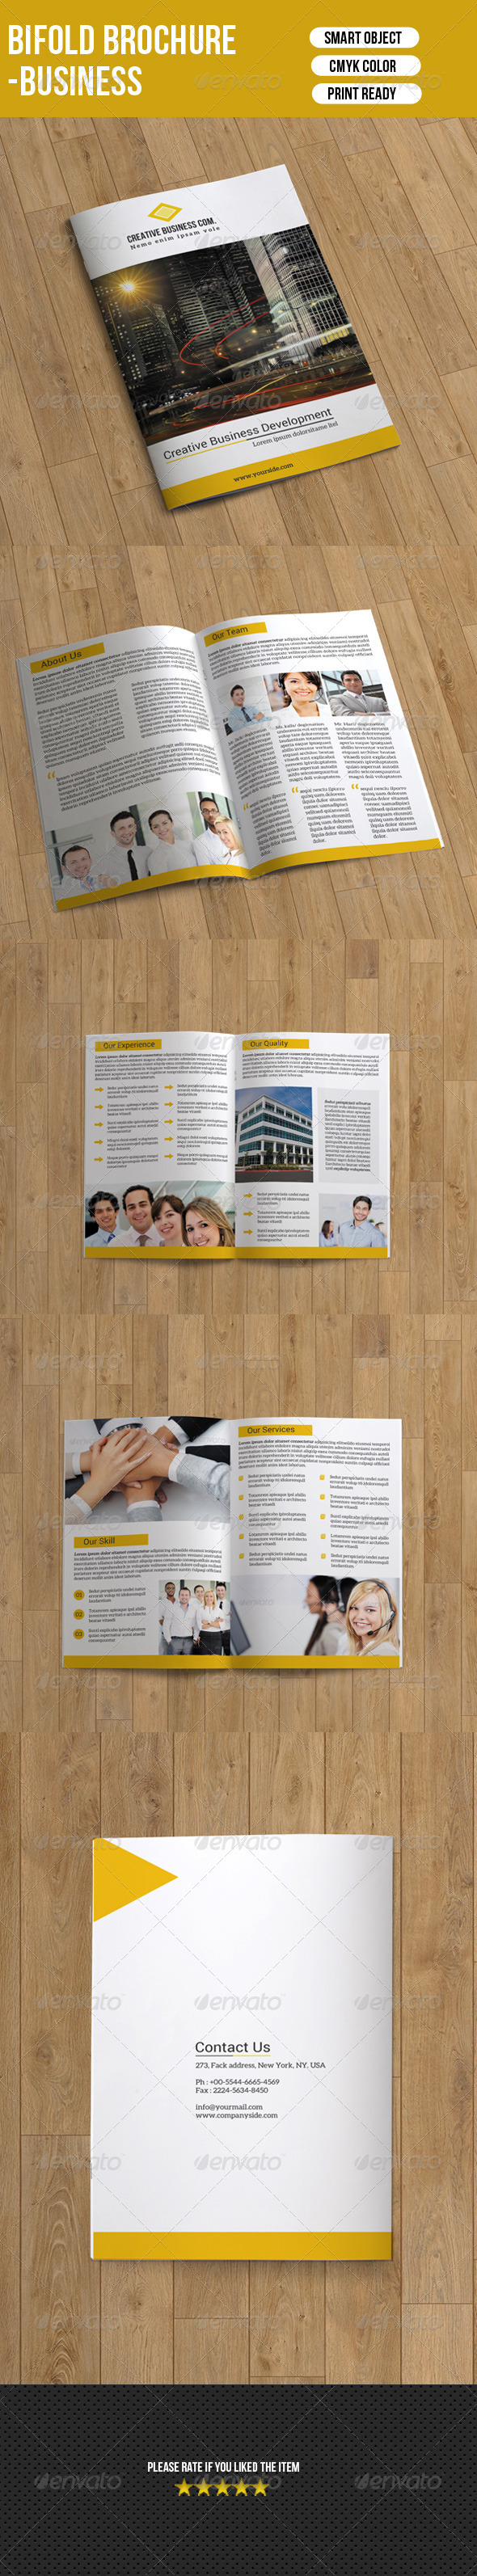 GraphicRiver Corporate Brochure Template-8 Pages 7454780